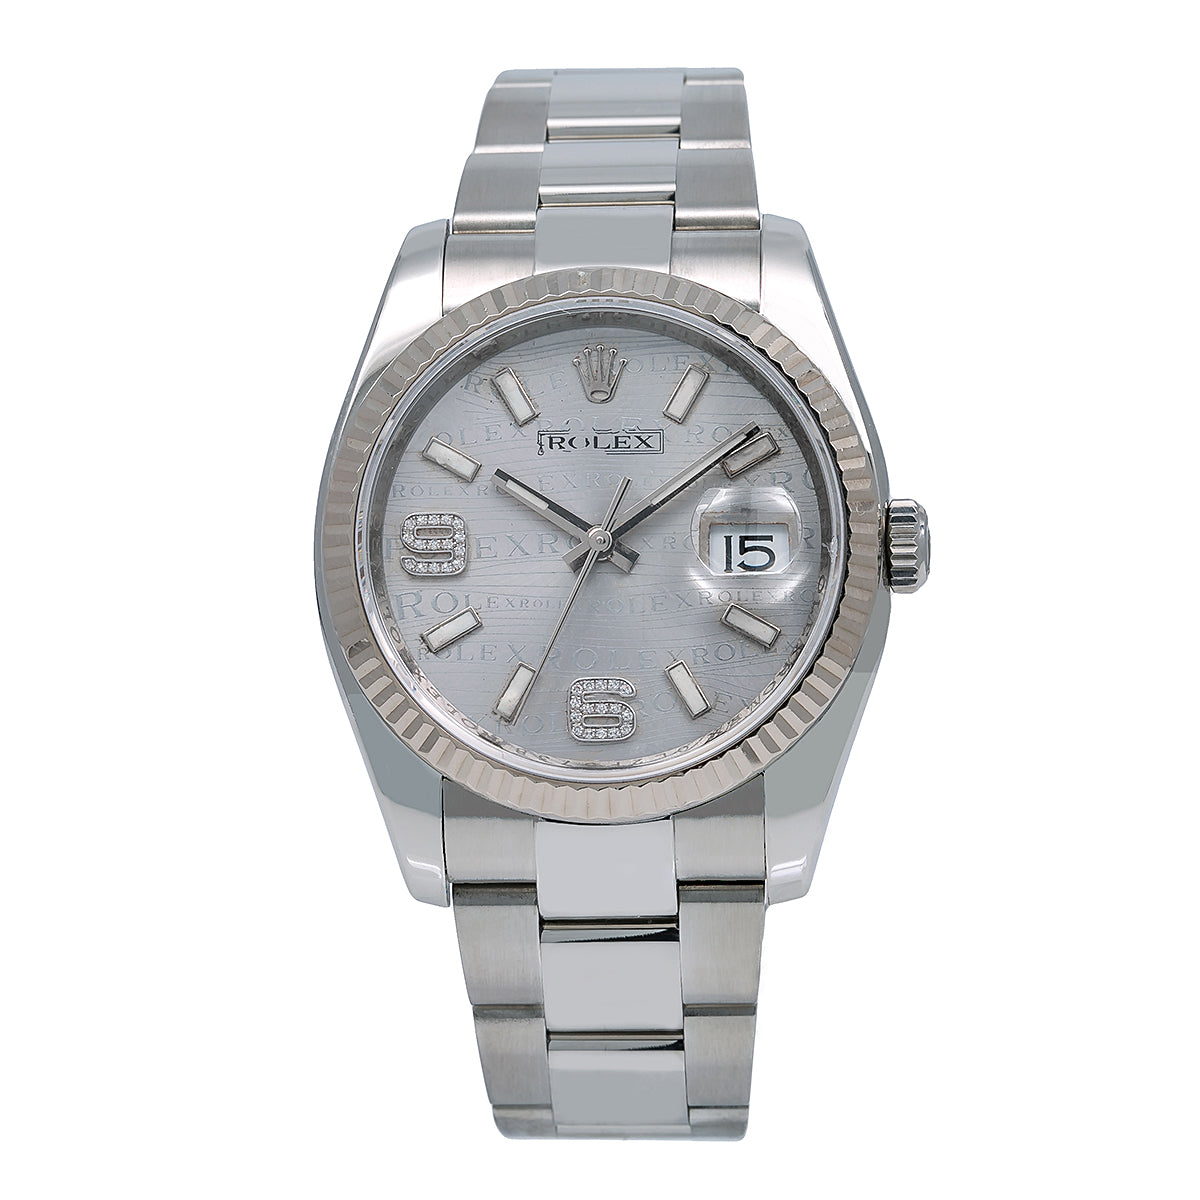 Rolex Datejust Diamond Watch, 116234 36mm, Rhodium Waves Dial Diamond on 6&9 Fluted Oyster Watch